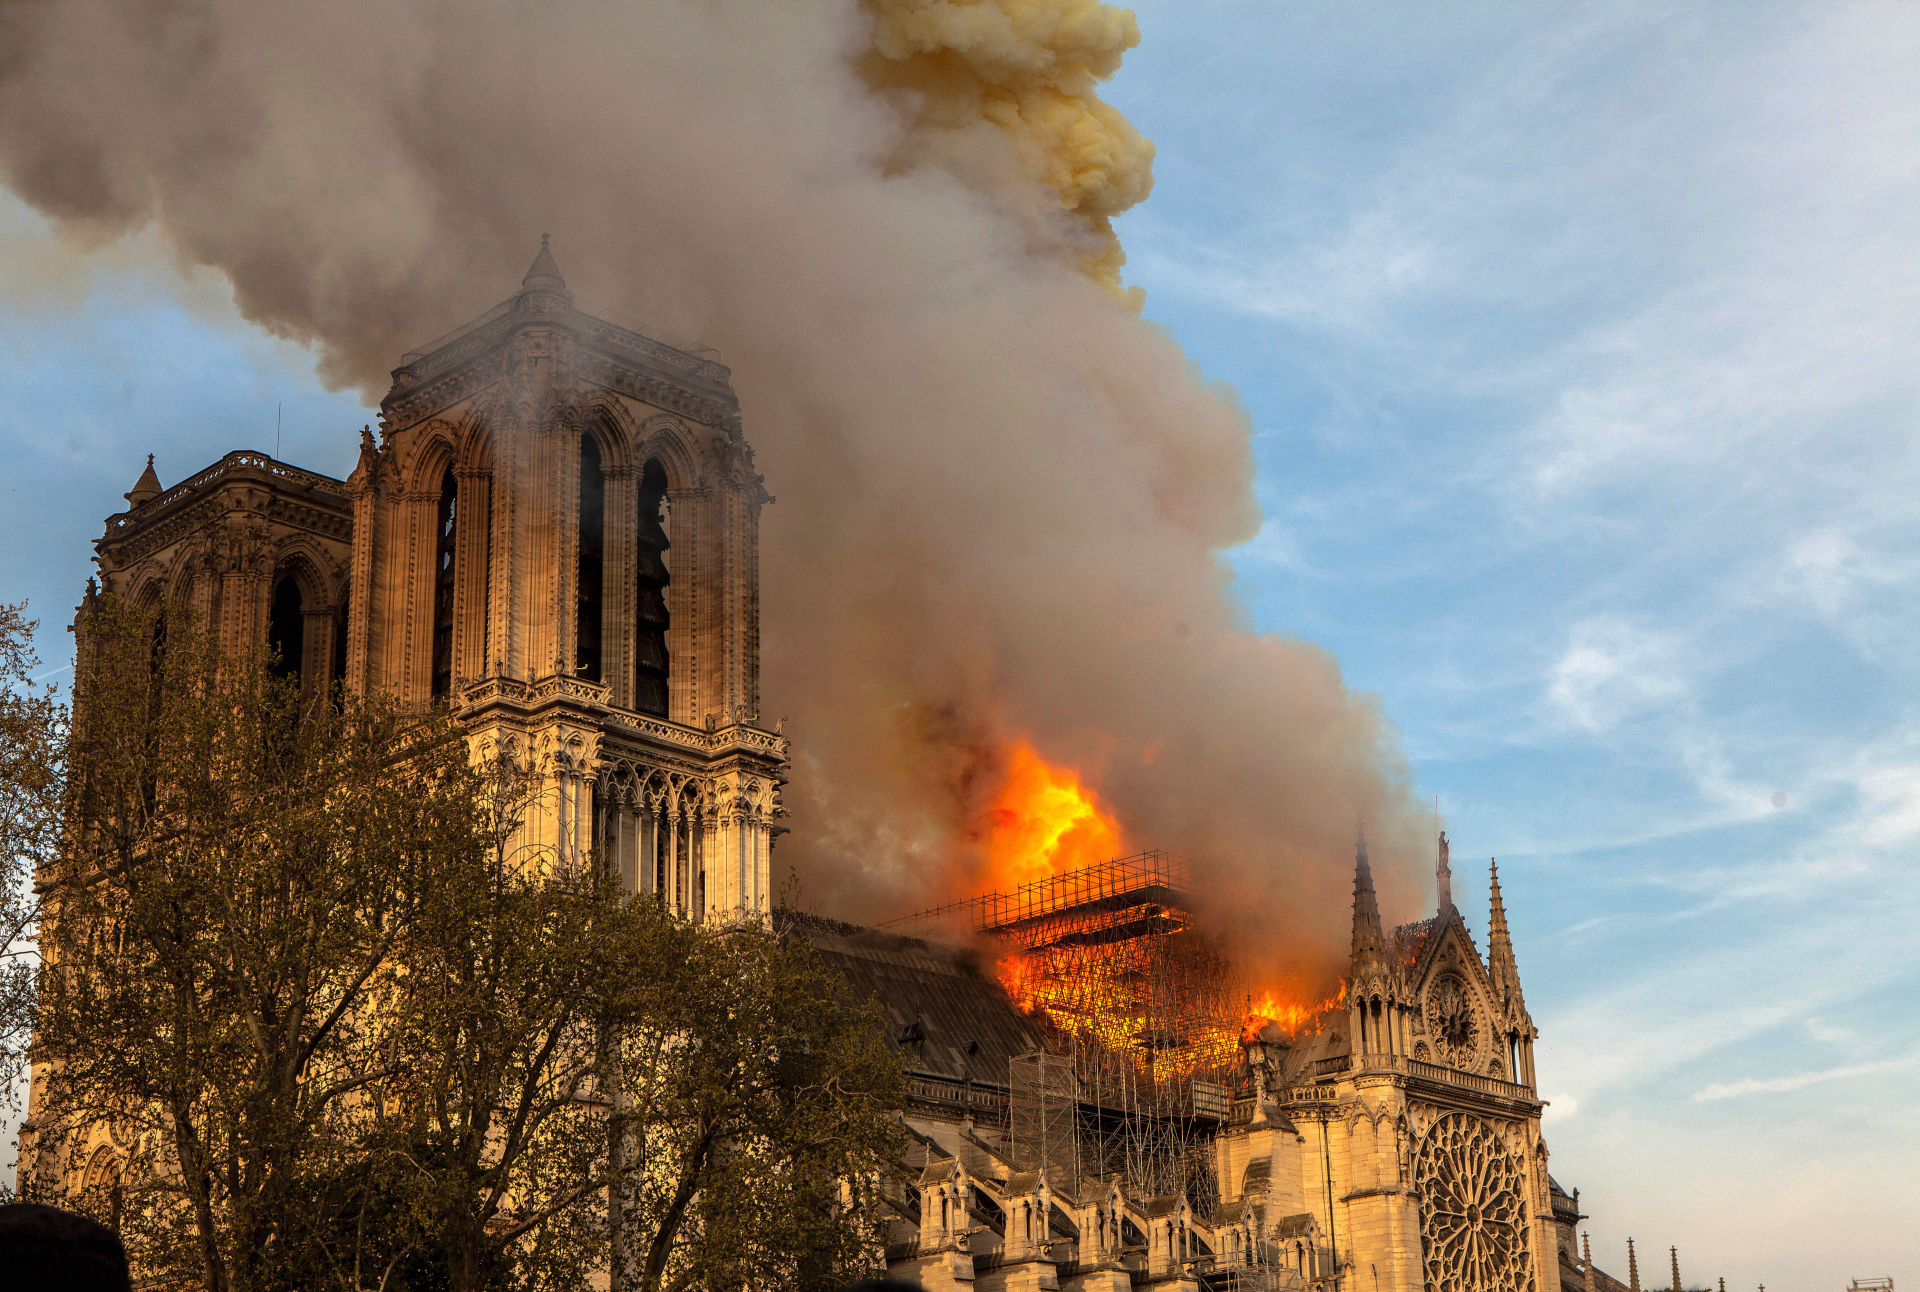 Worth the risk? It's not easy to put a value on a cathedral